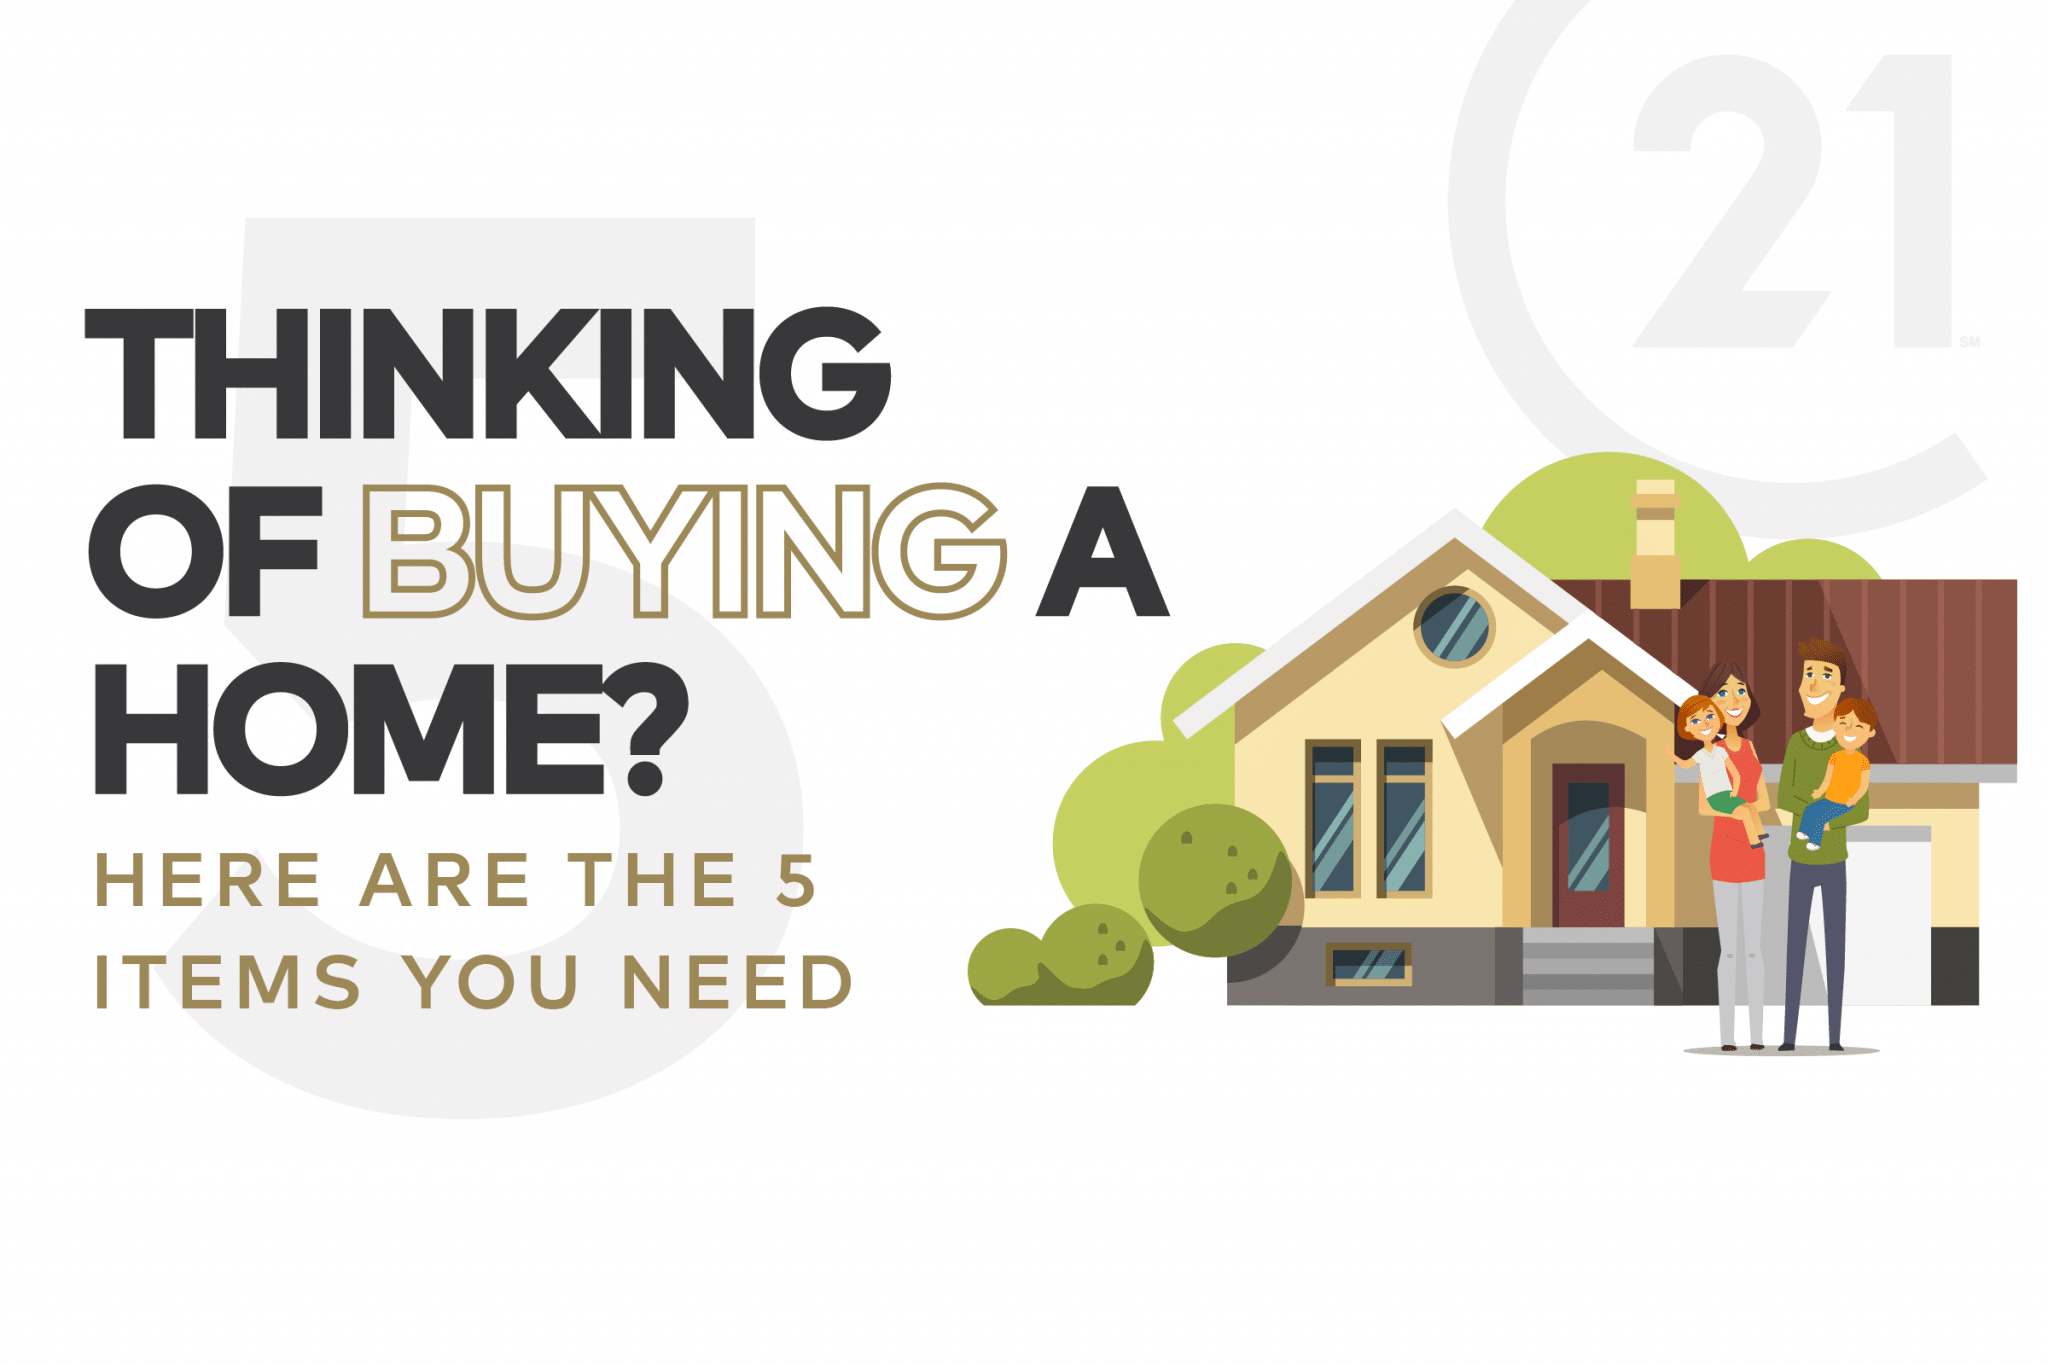 5 Things You Need To Buy a Home